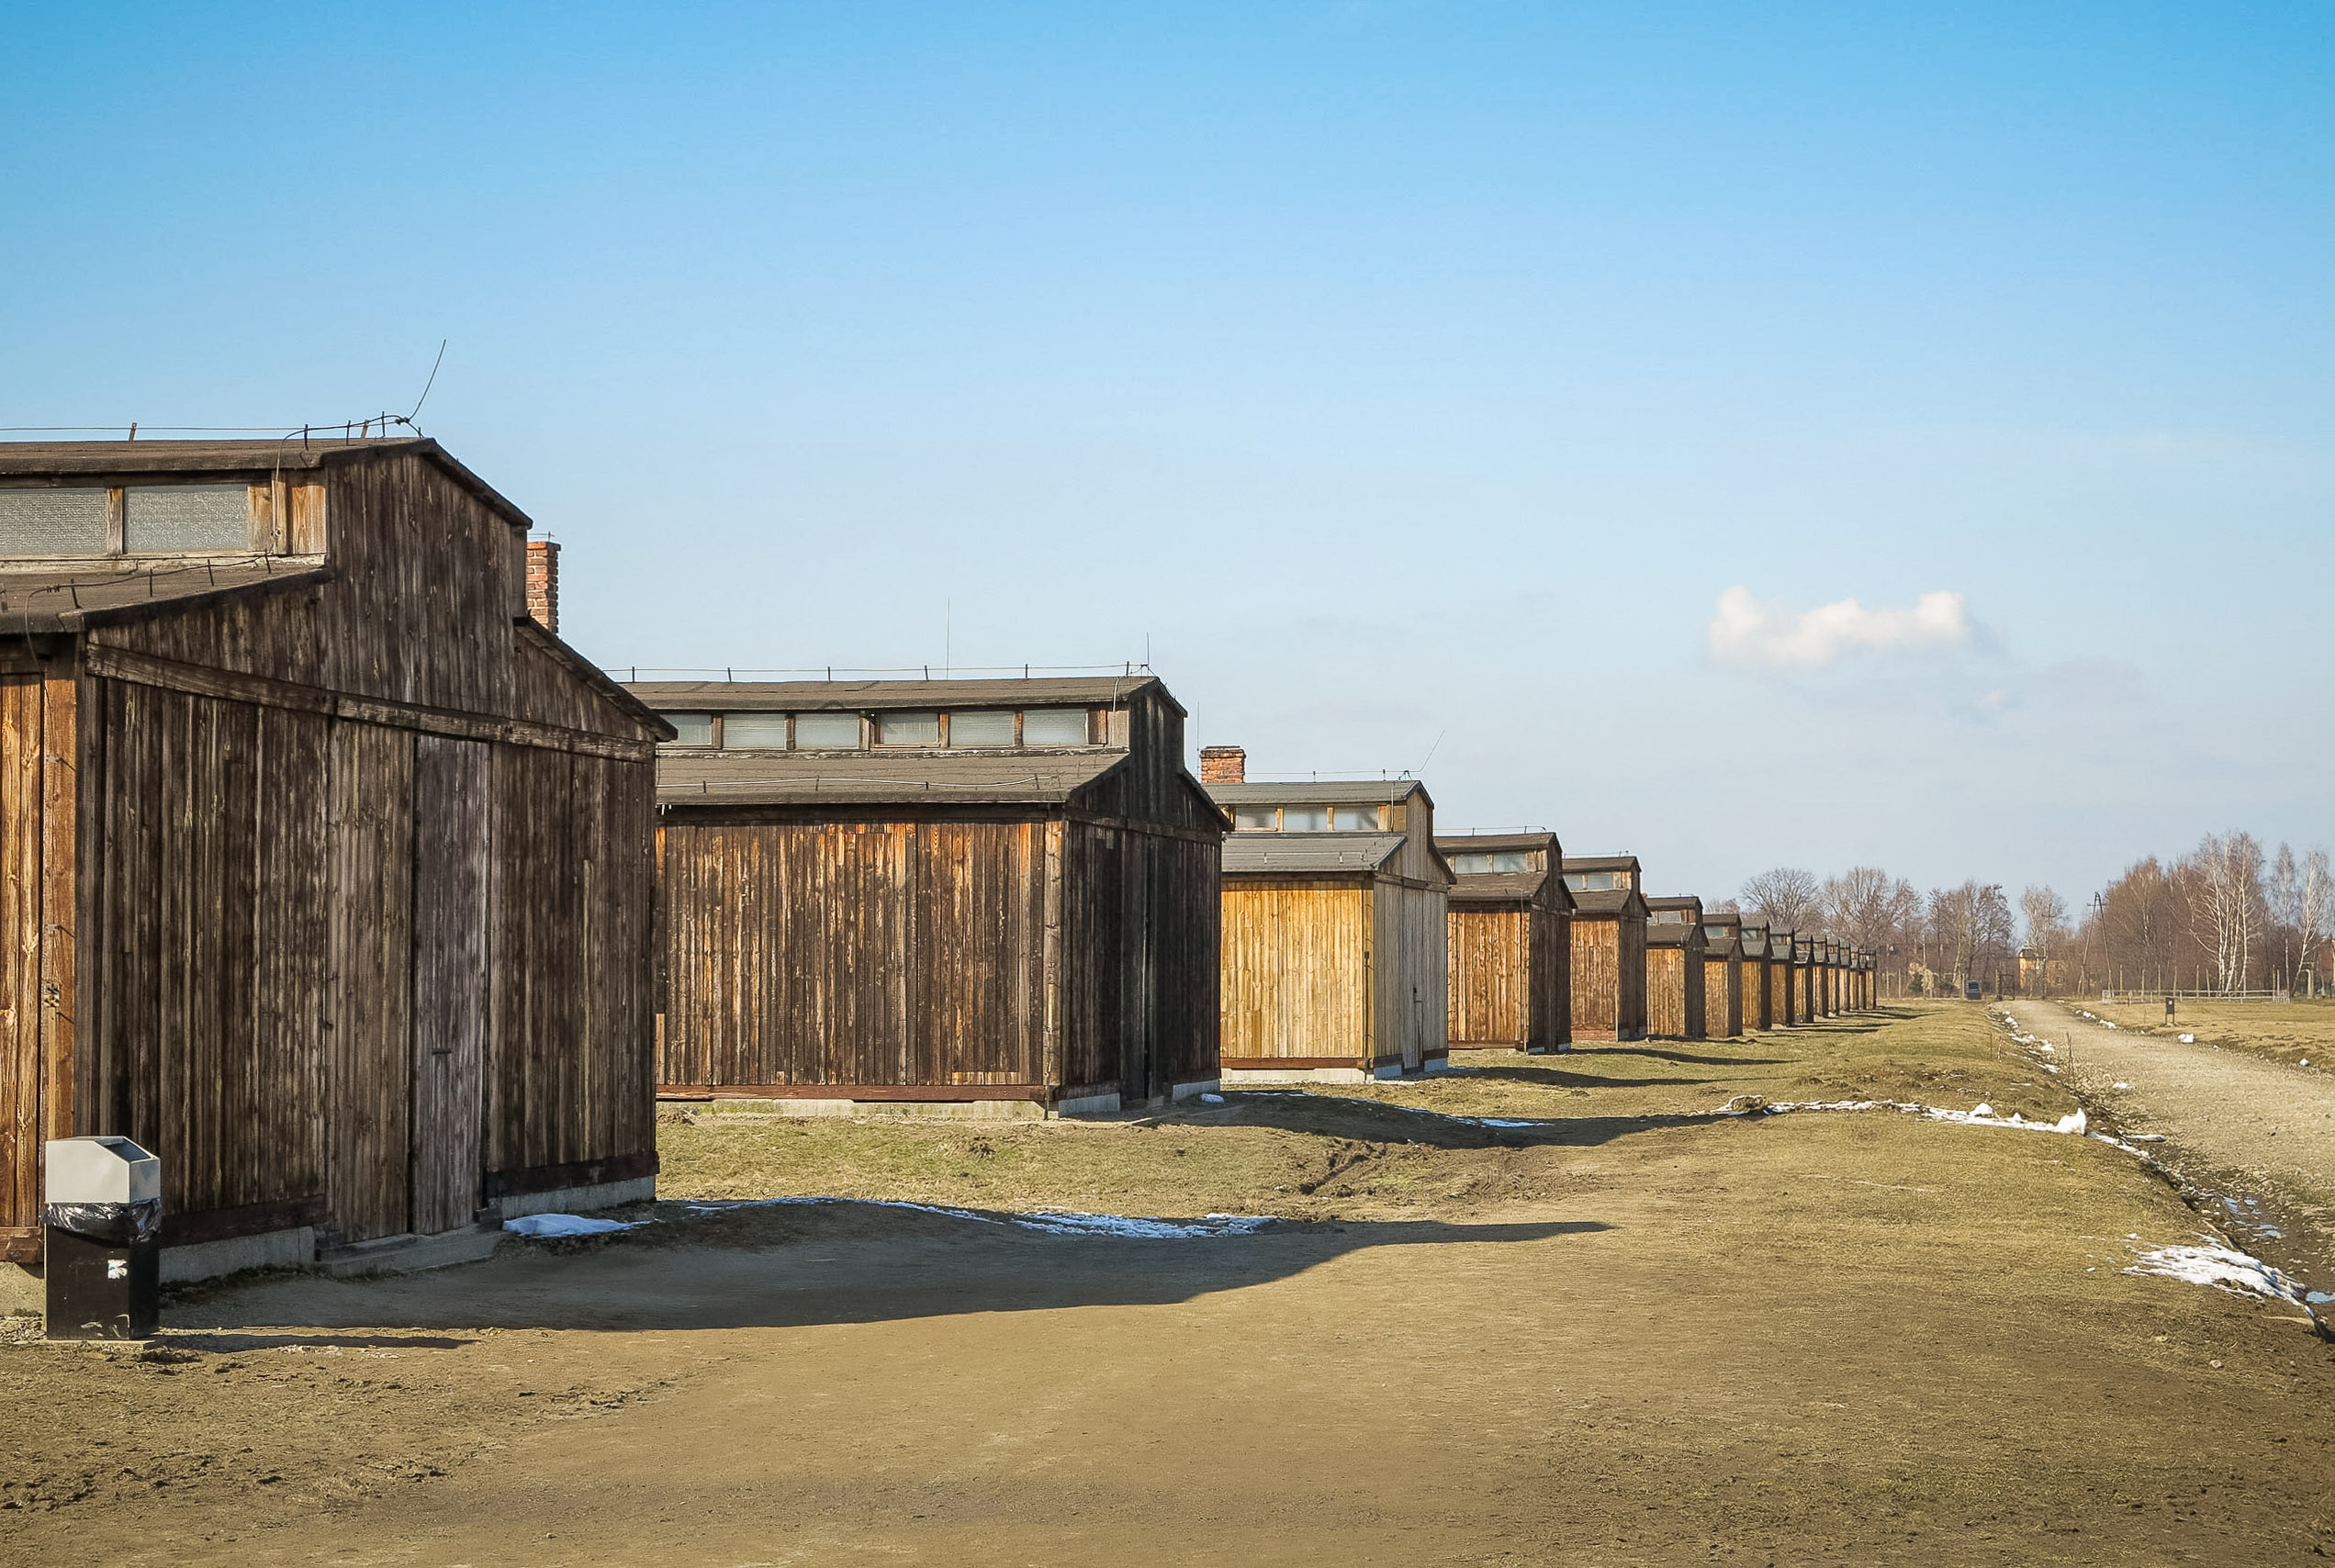 Essay: Concentration Camps